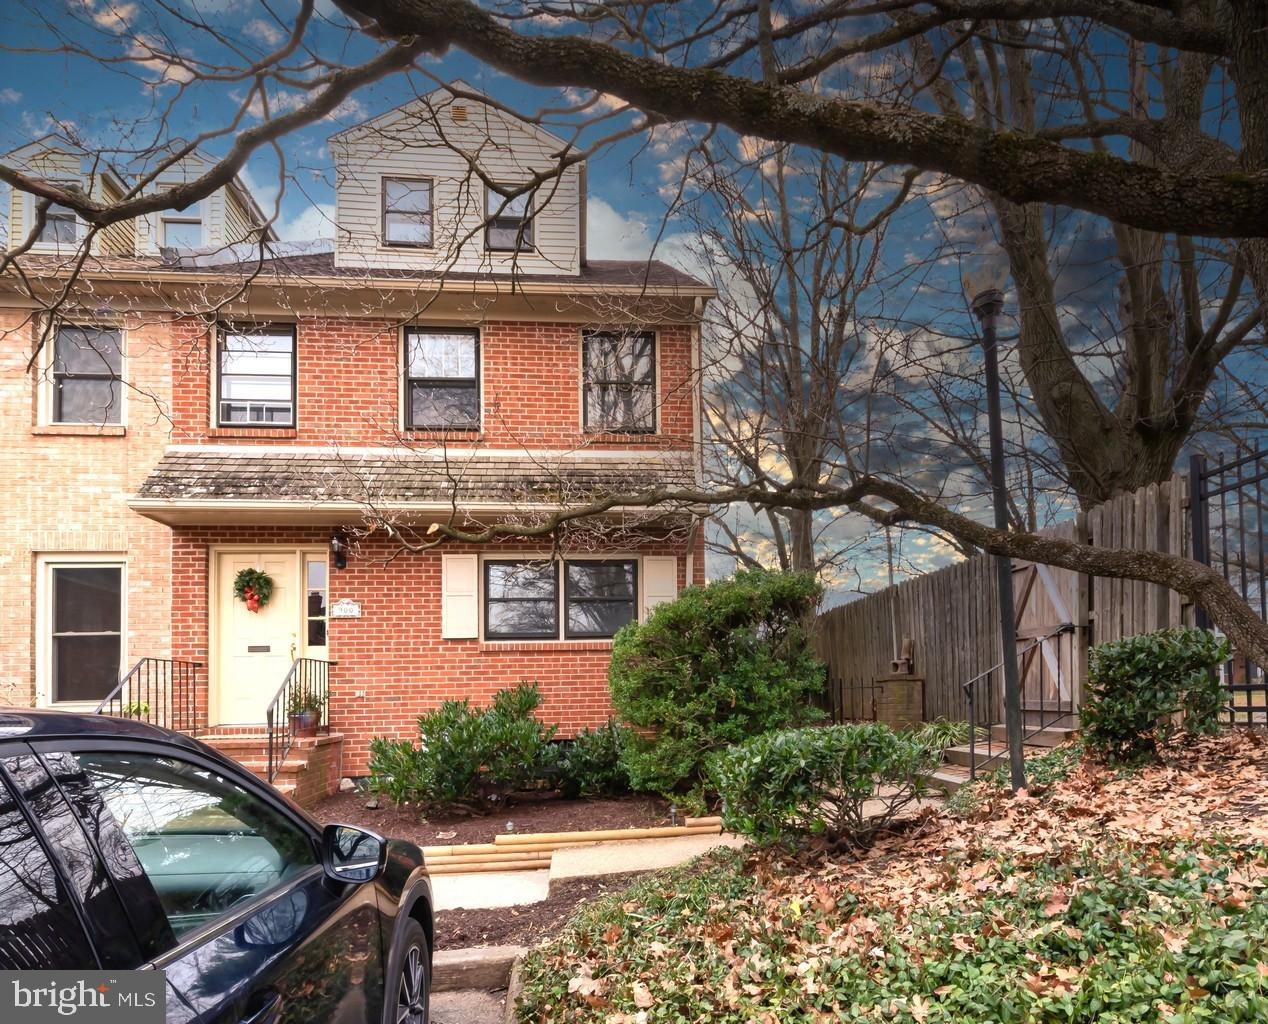 Brick beauty on N. Bancroft Parkway! Black wrought iron fence and graceful brick columns announce en